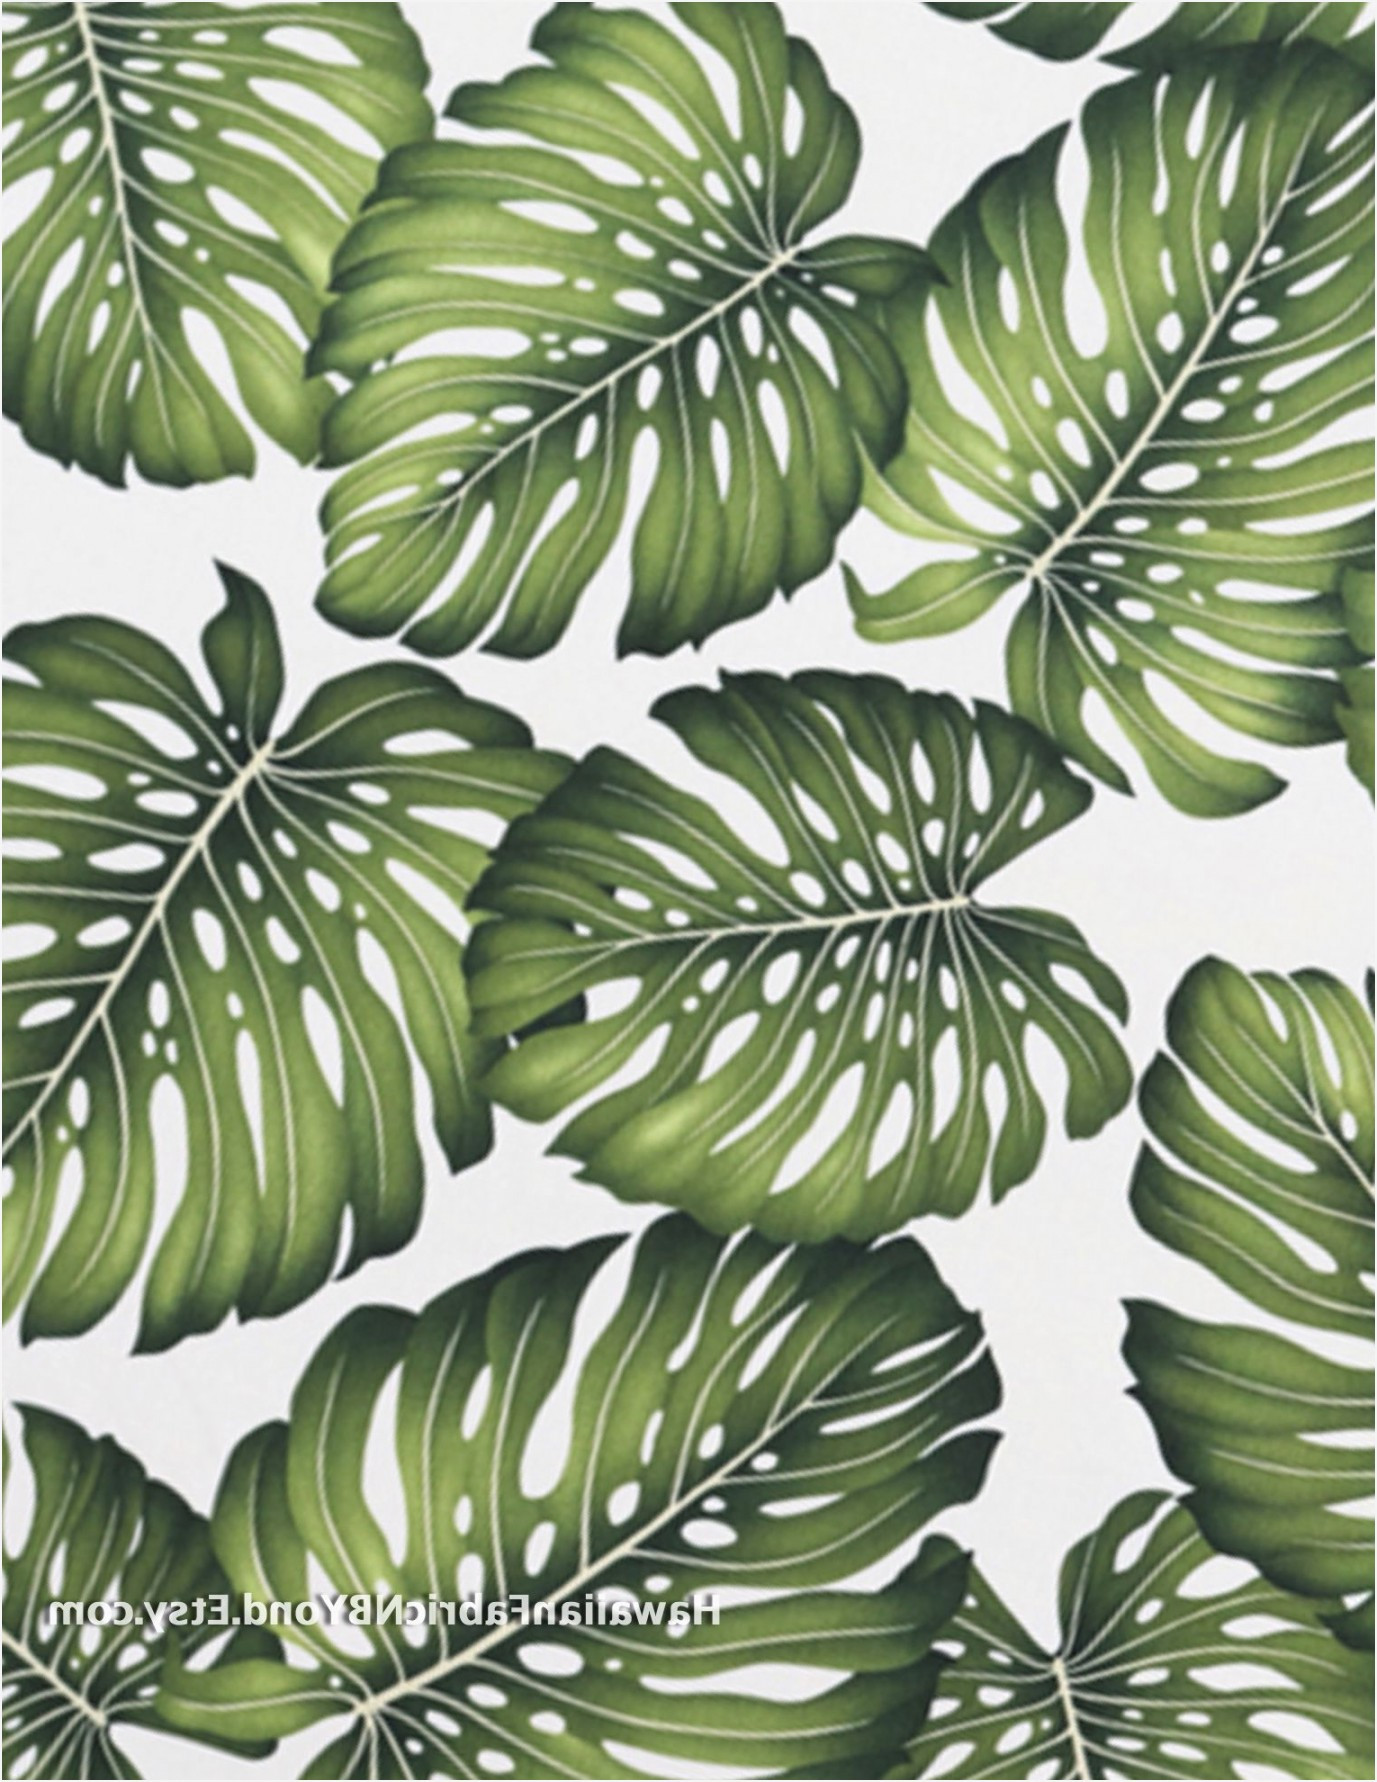 Tropical Upholstery Fabric Inspirational Tropical Leaf Fabric Print Monstera Leaf In Beautiful